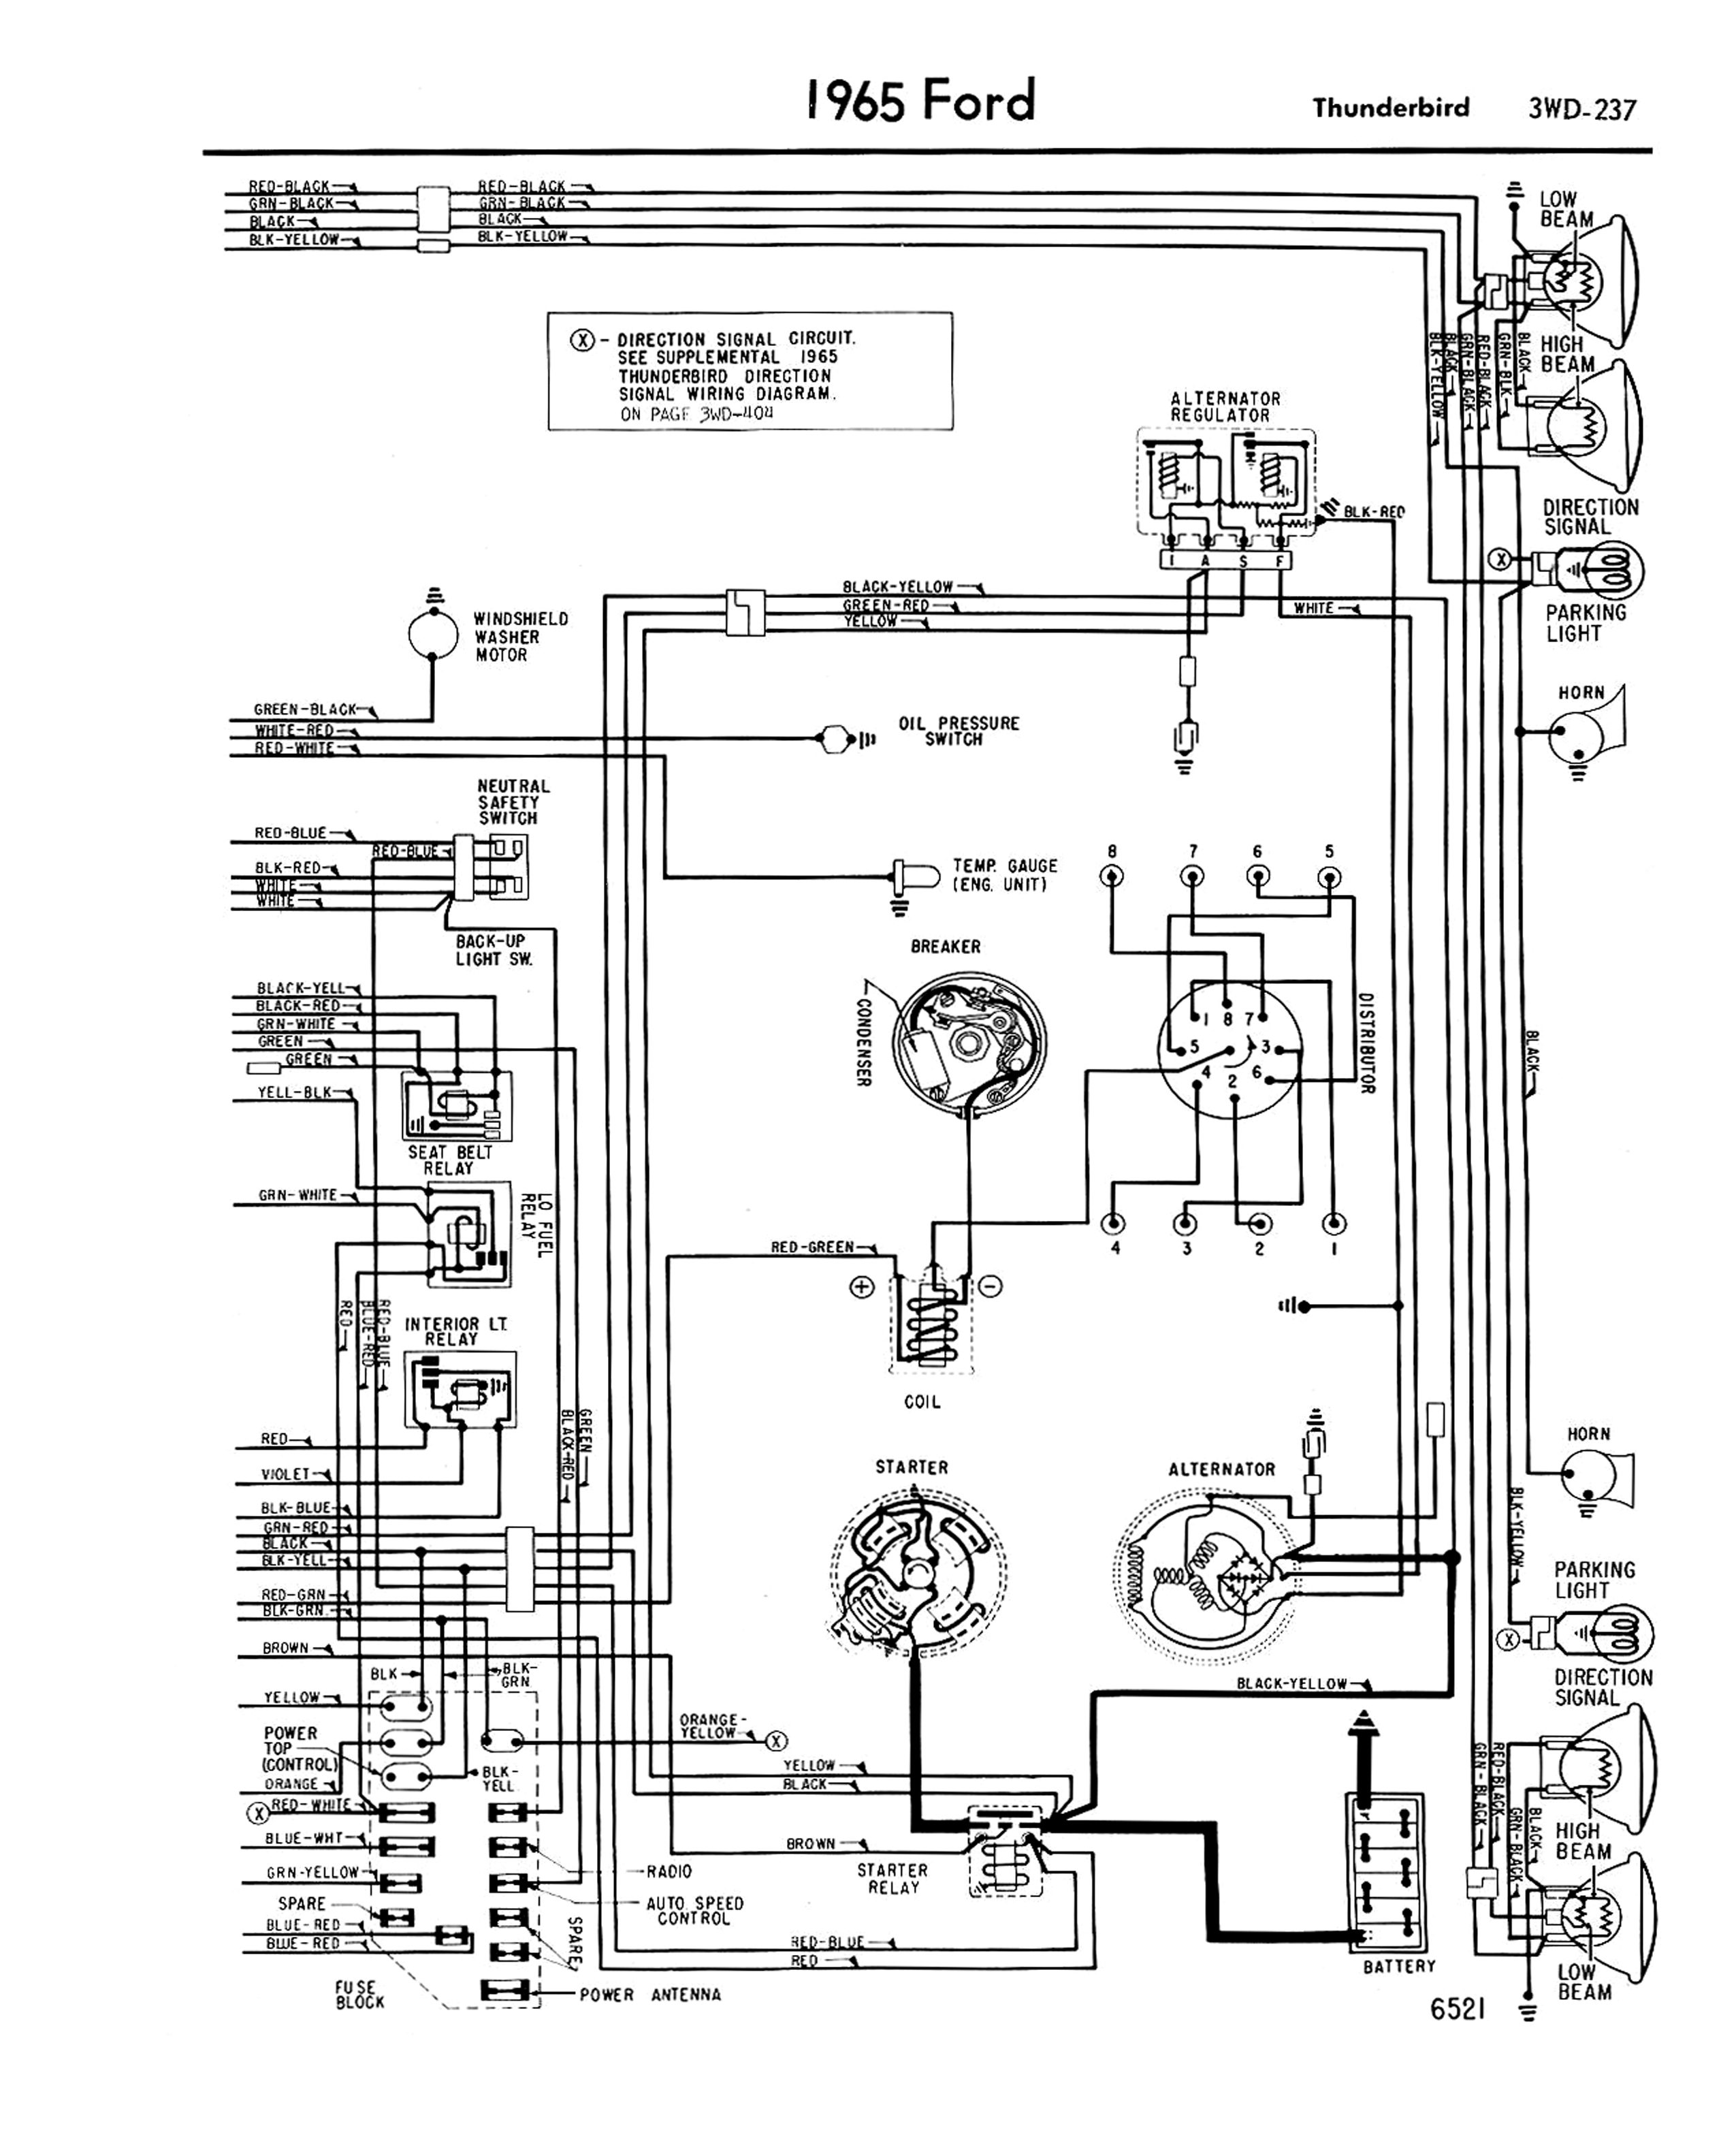 1958 68 ford electrical schematics turn signal and brake switch wiring